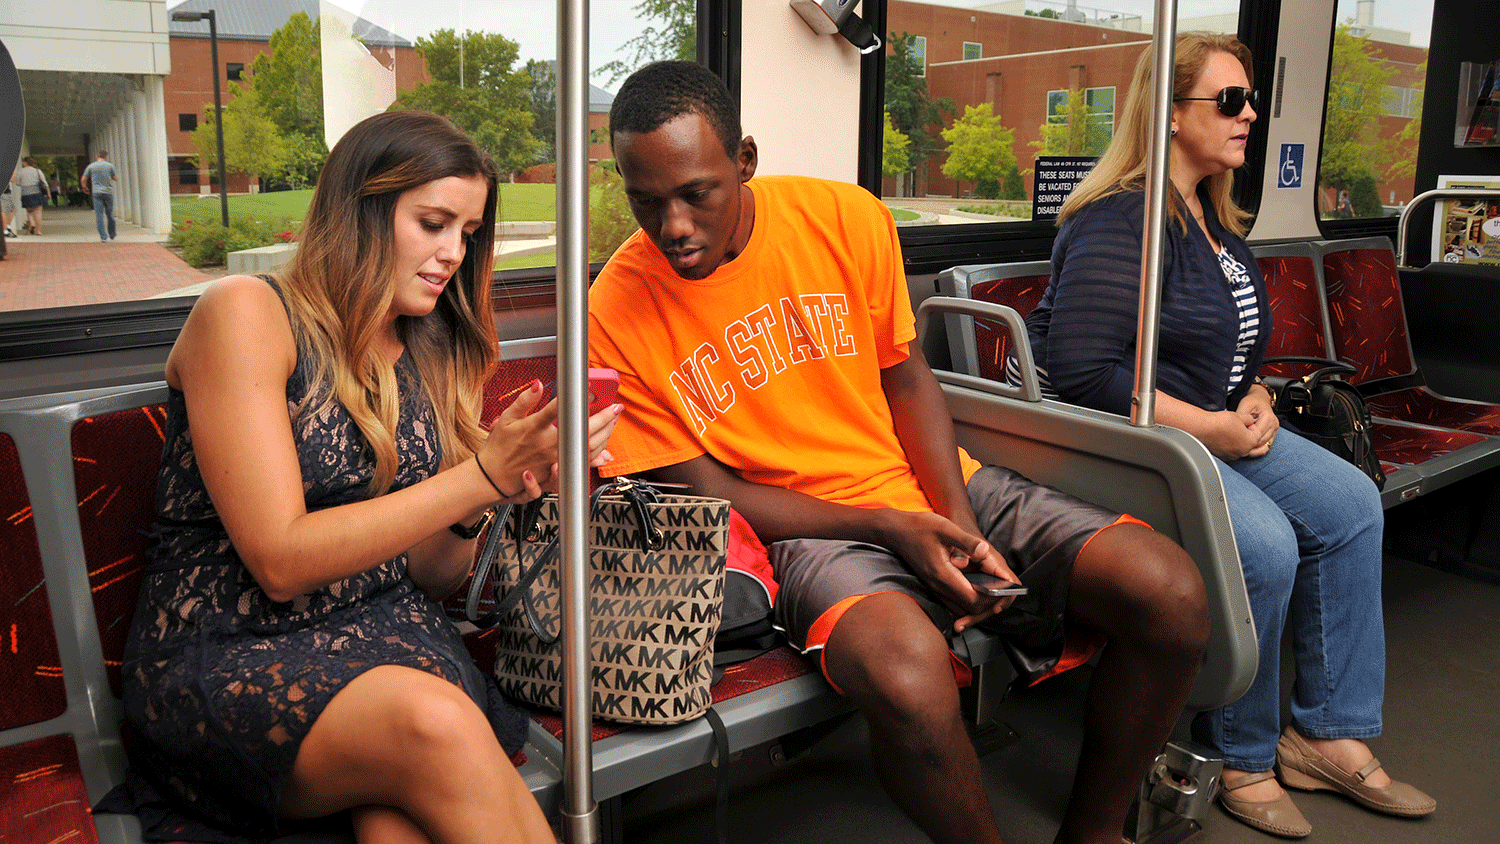 Wolfline bus riders chat while crossing through Centennial Campus.